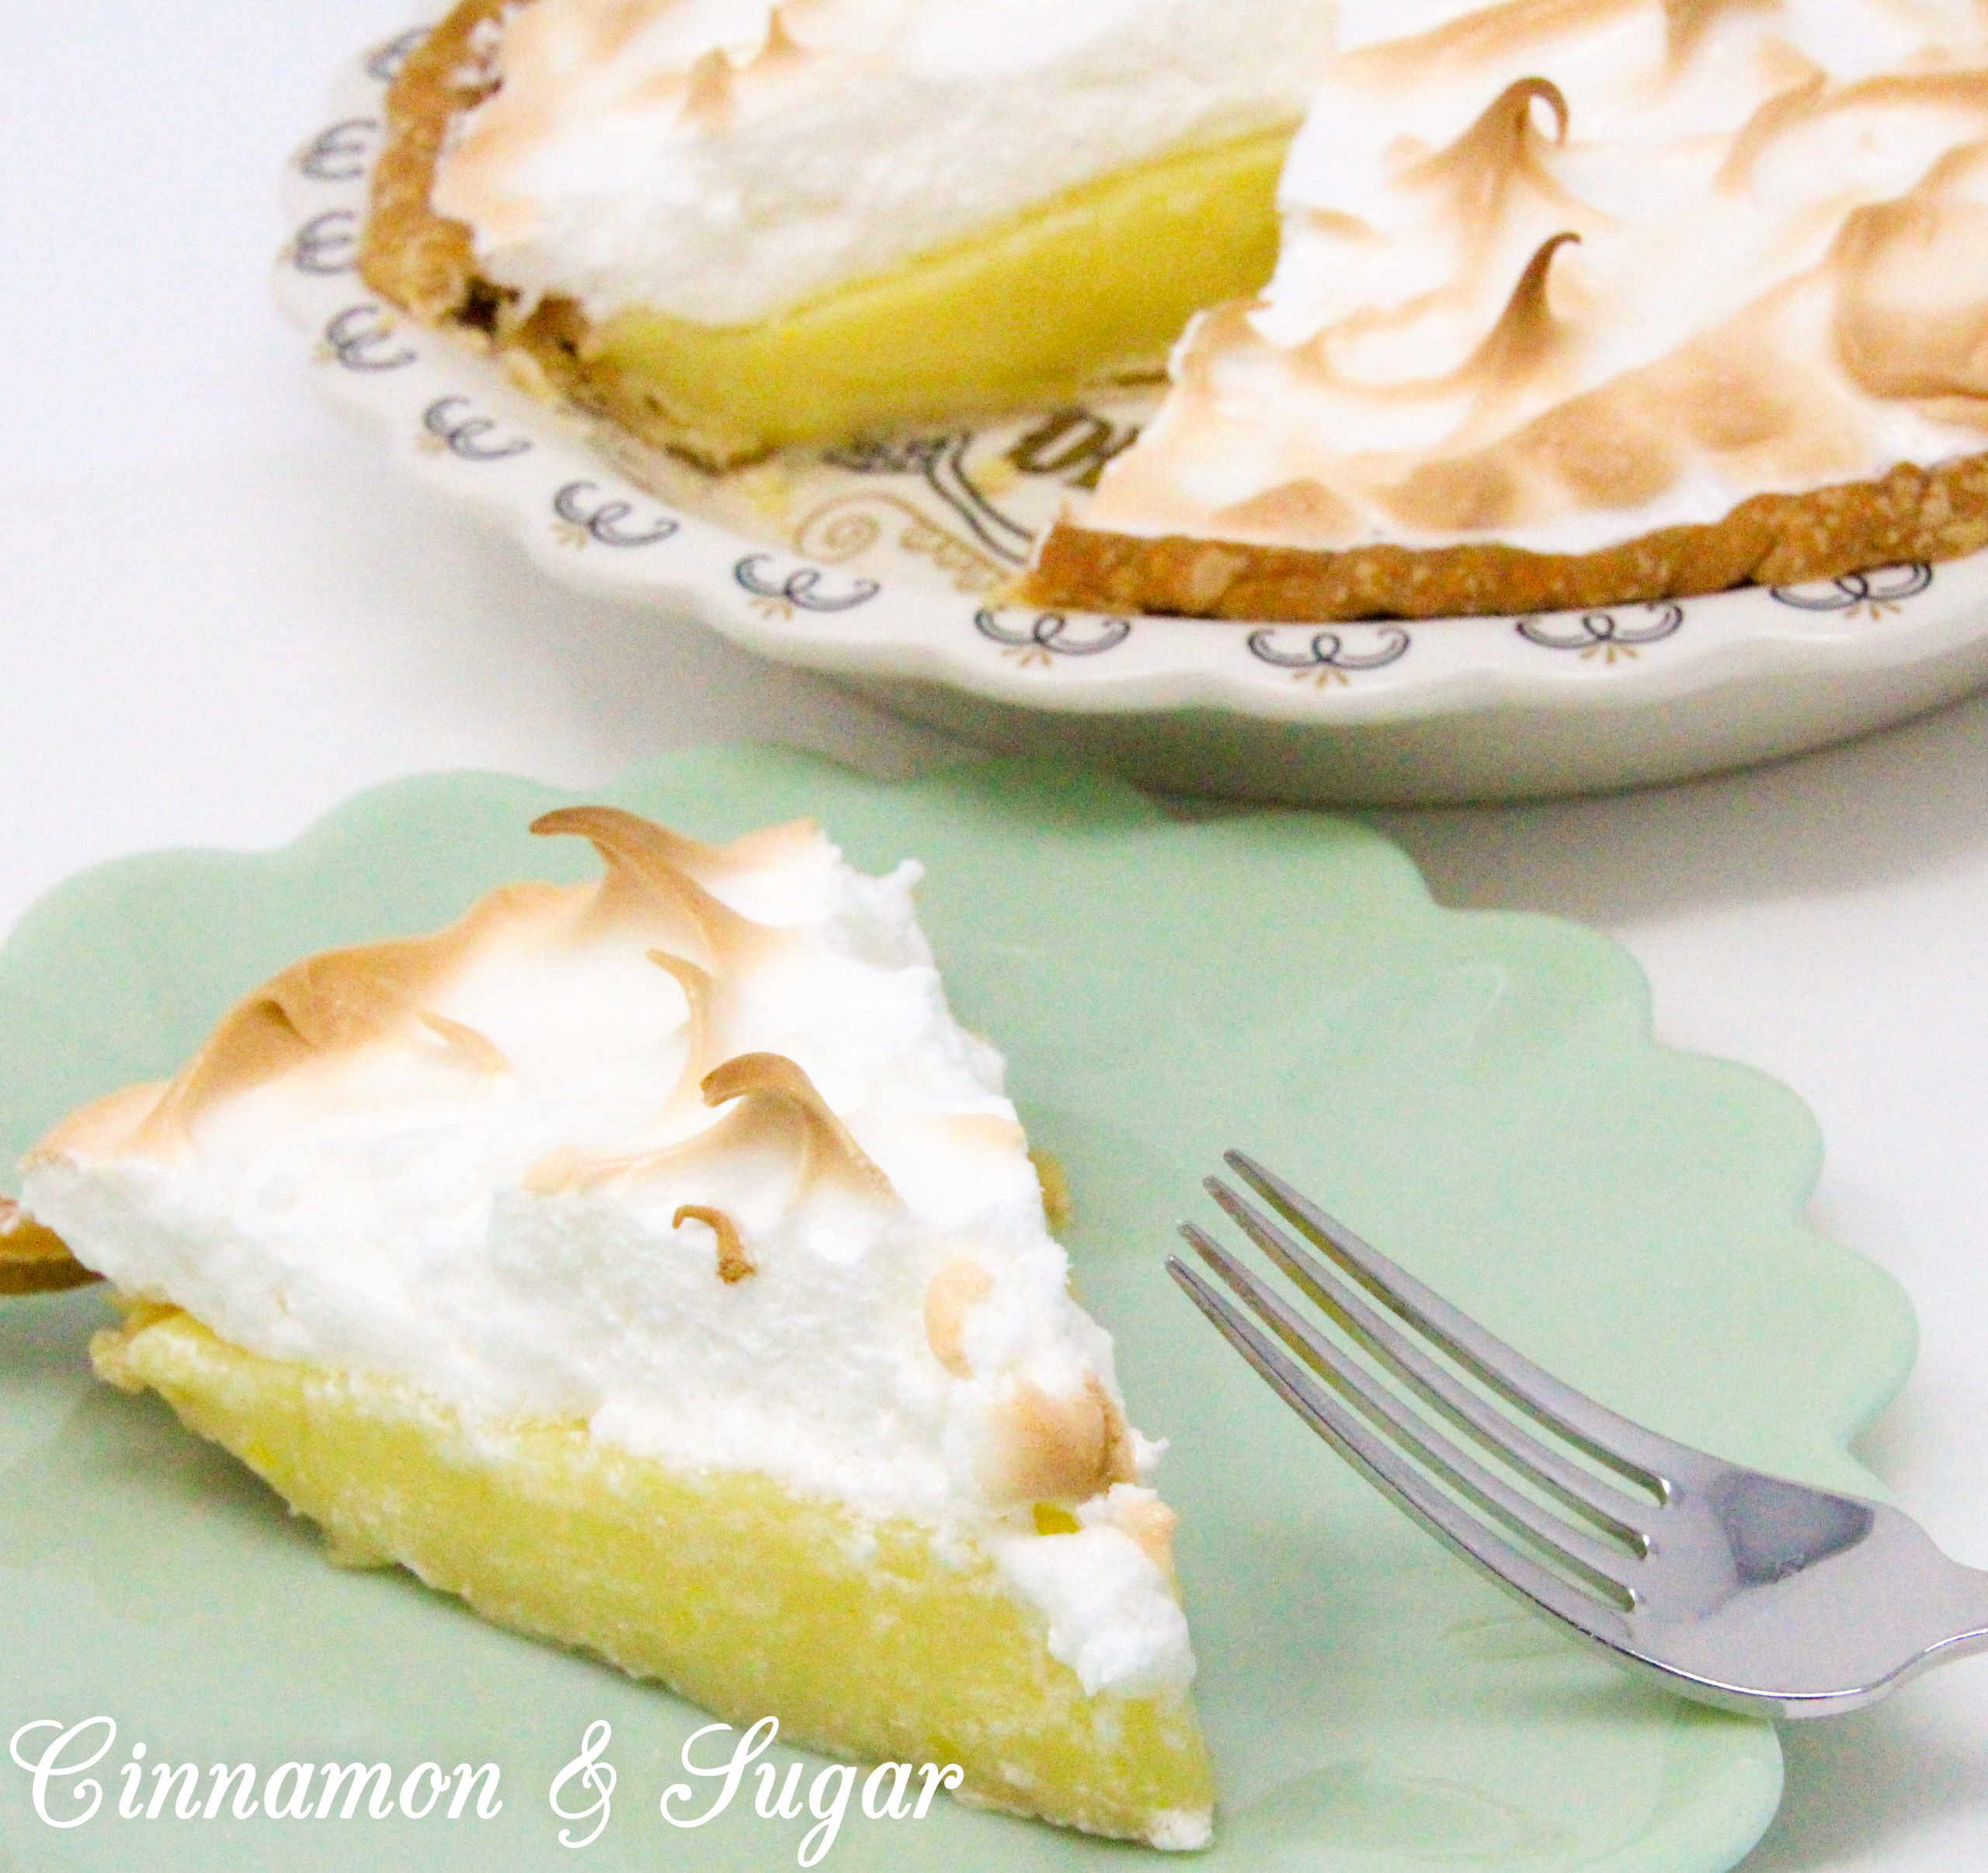 Lemony sweet-tart custard filling piled high with billowing cloud-like meringue, Susan Cutie's Lemon Meringue Pie is a refreshing dessert! Recipe shared with permission granted by Tina Kashian, author of MISTLETOE, MOUSSAKA, AND MURDER.